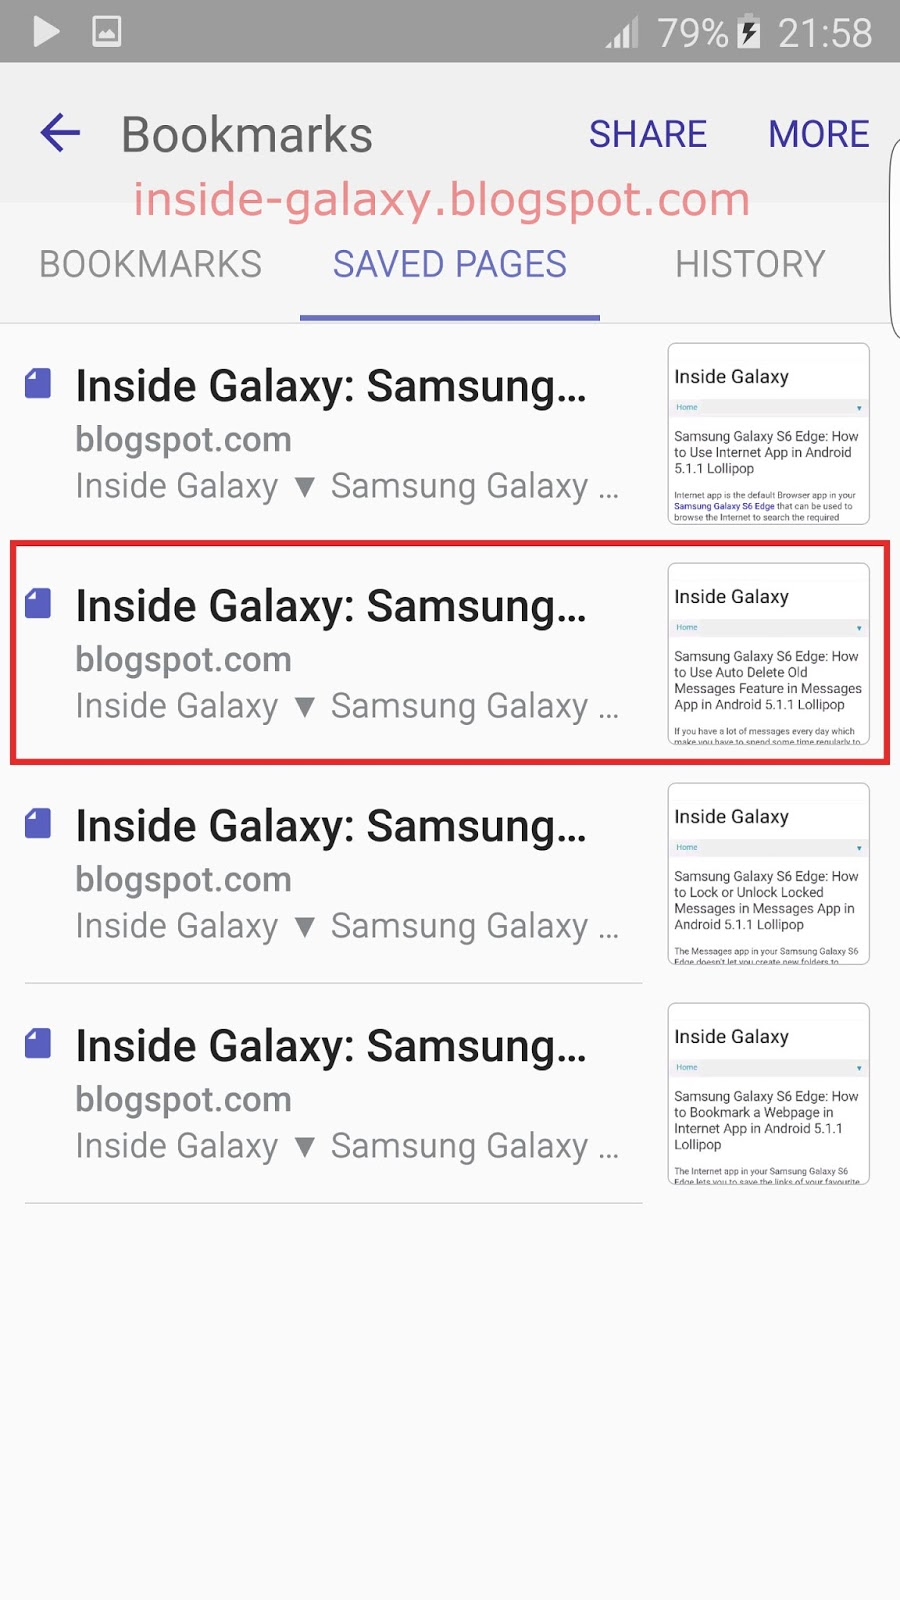 Samsung Galaxy S6 Edge: How to Save Webpages for Offline